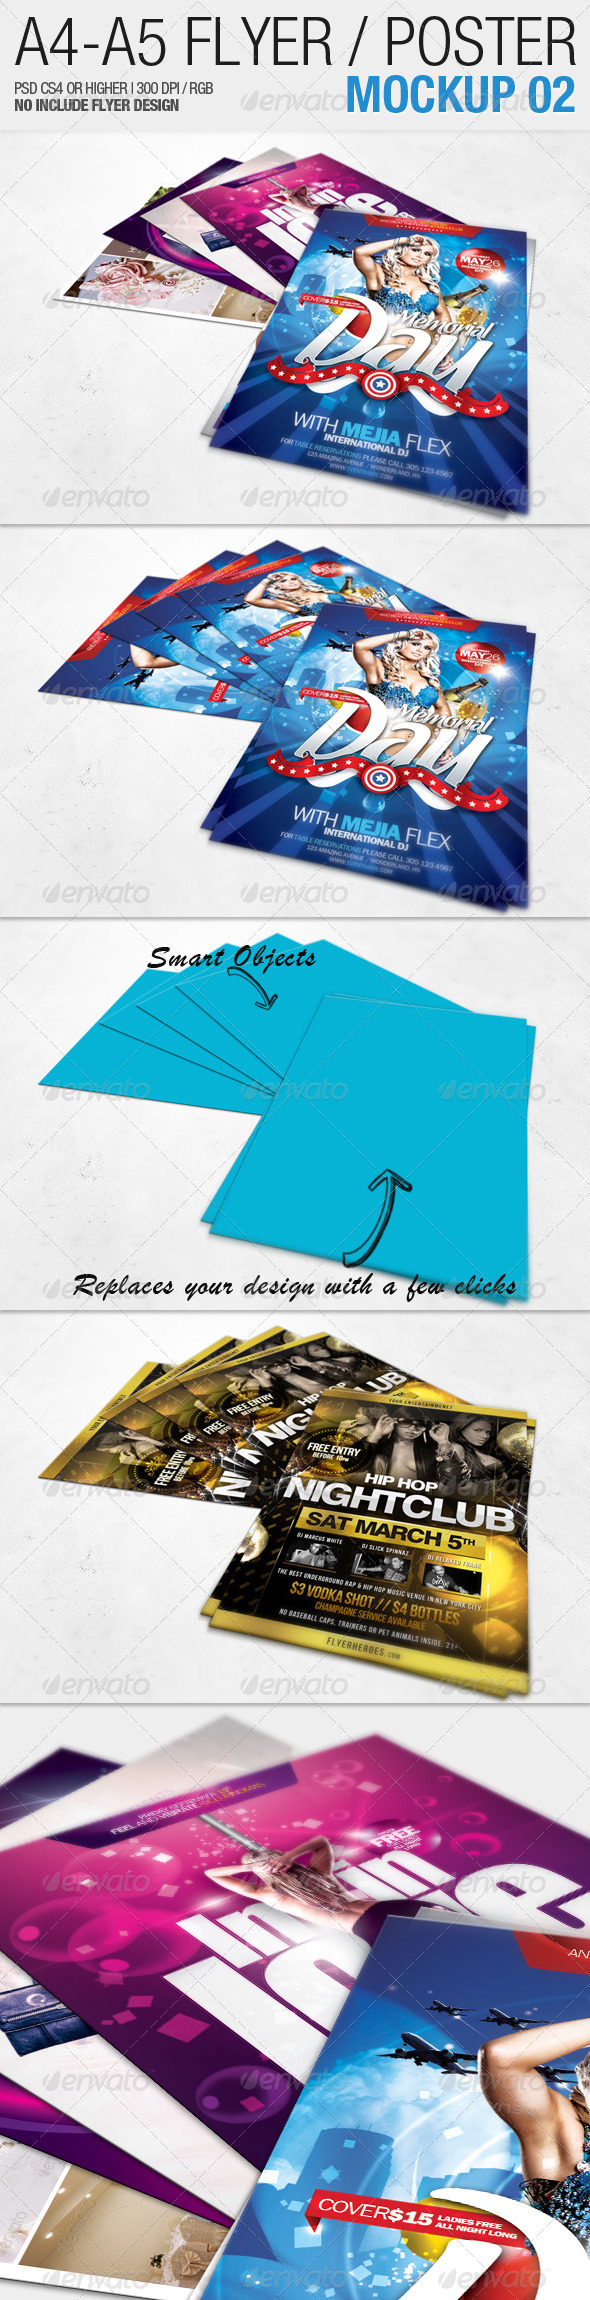 GraphicRiver A4 A5 Flyer Mockup 02 2311042